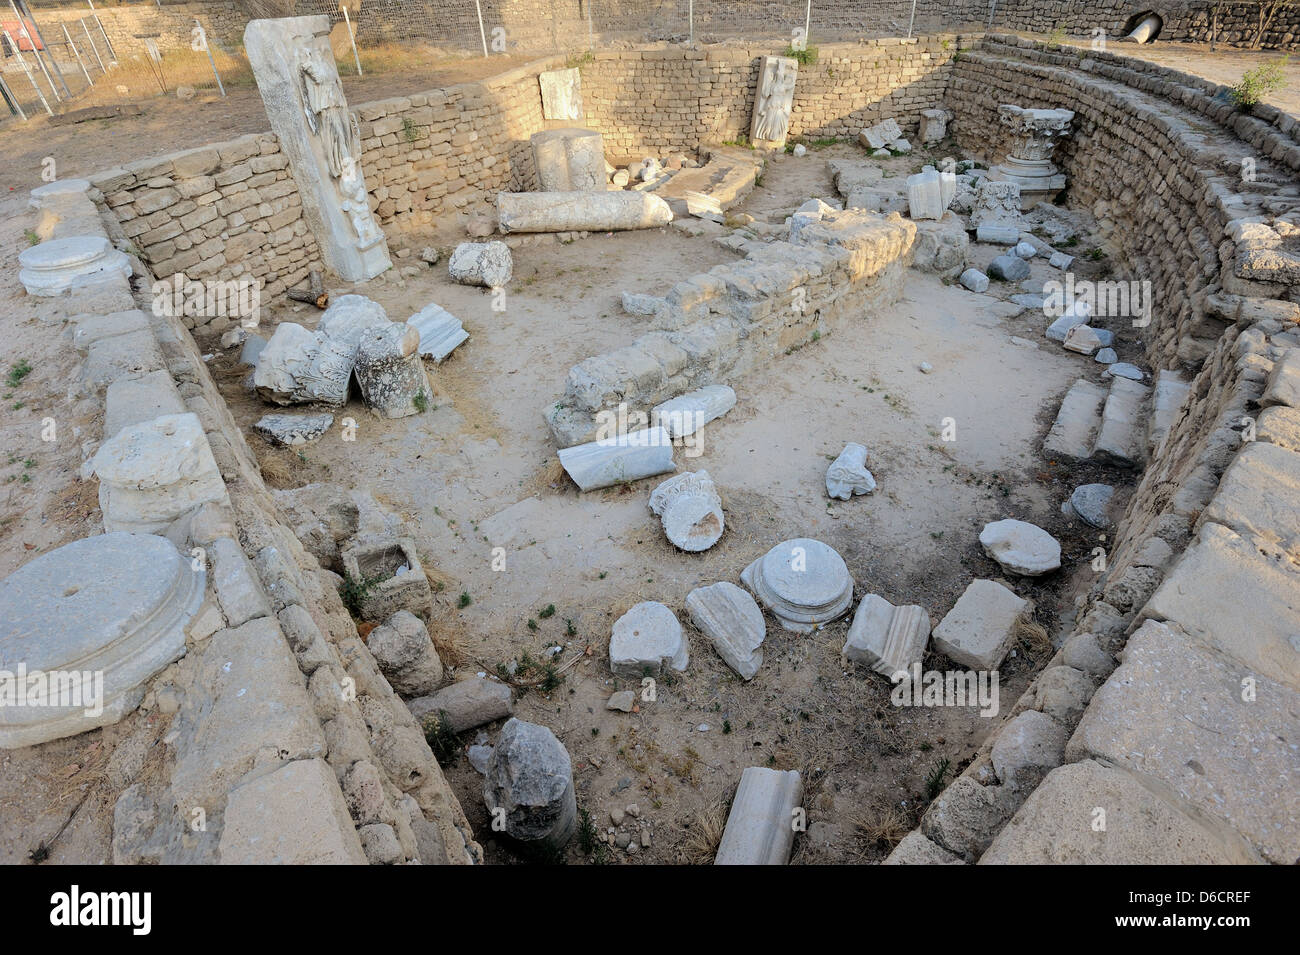 Remains of the Roman Basilica - Stock Image